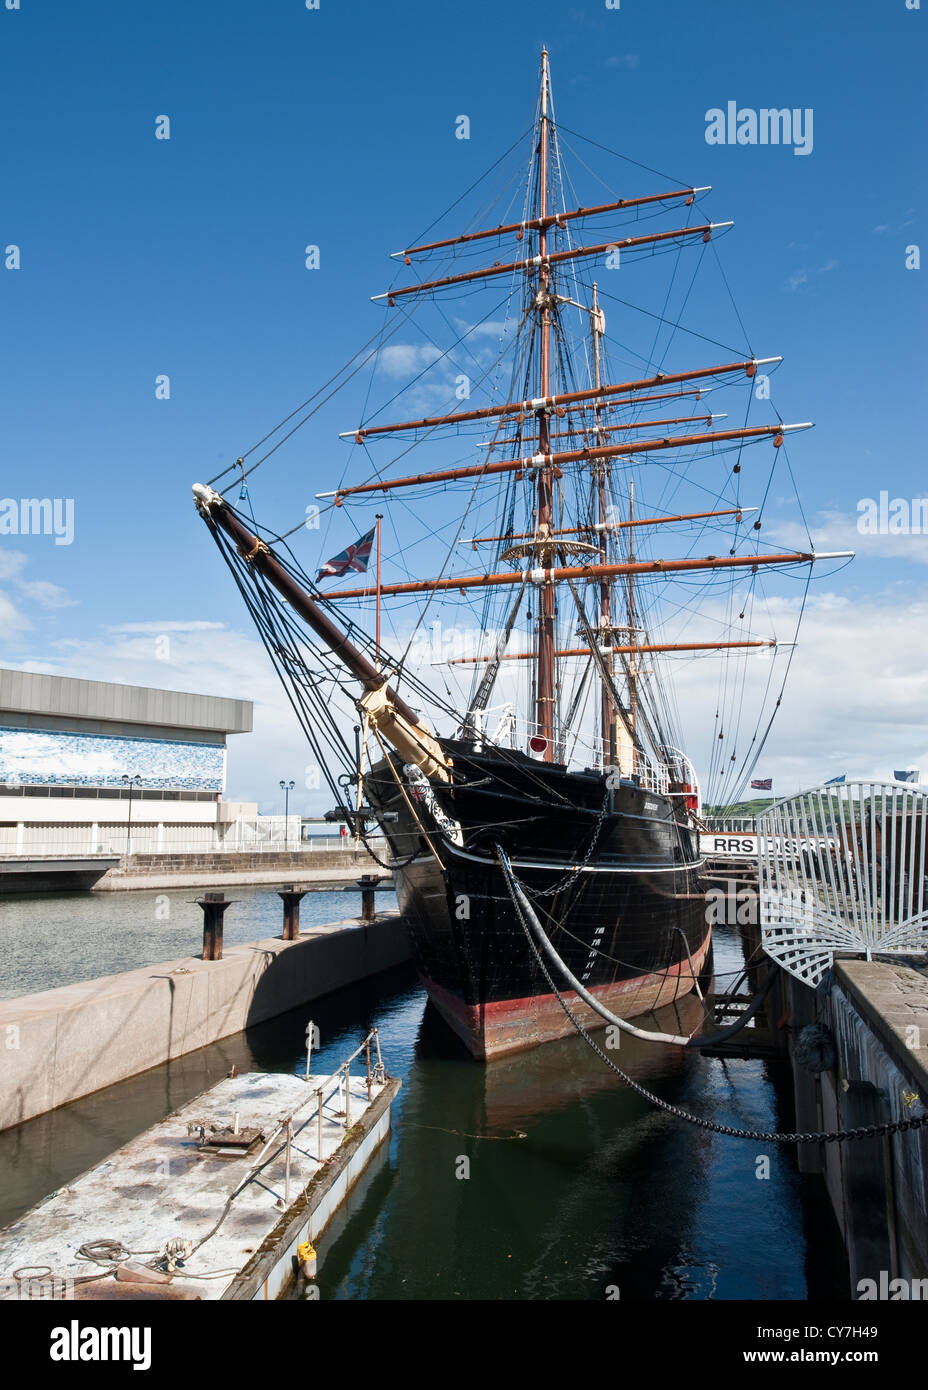 RRS Discovery in Dundee Stock Photo